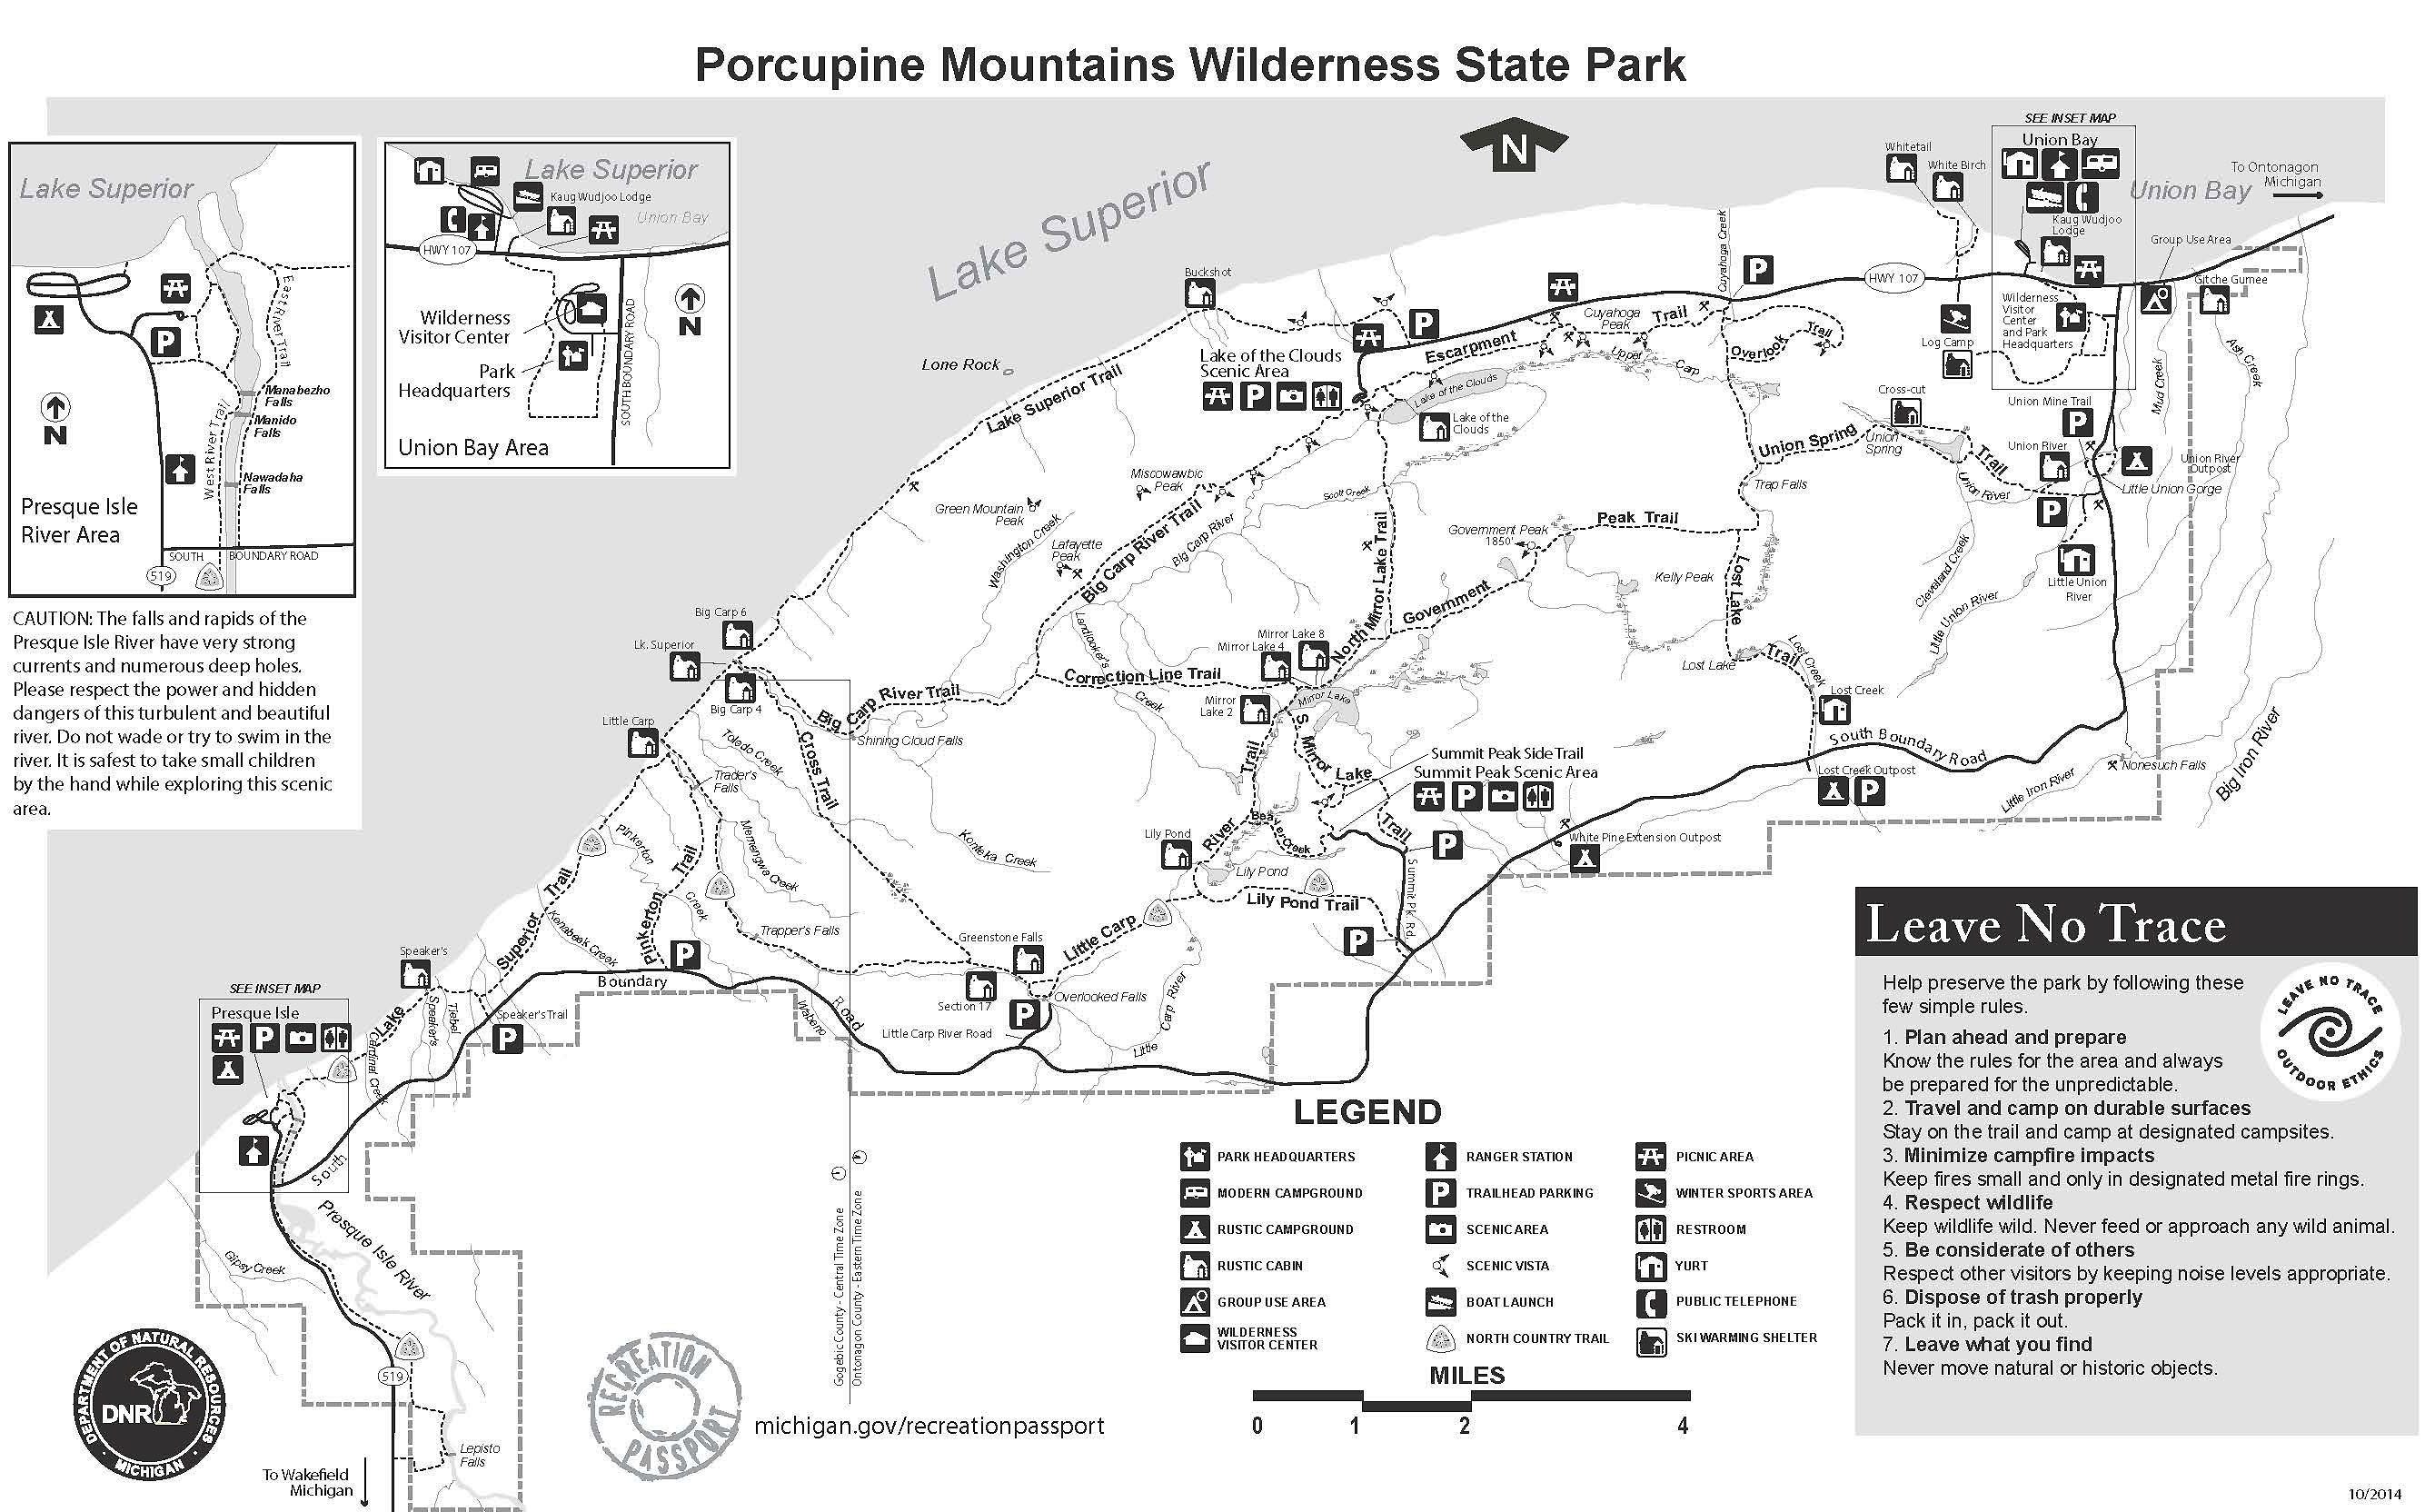 Porcupine Mountains Wilderness State Park Michigan Trail